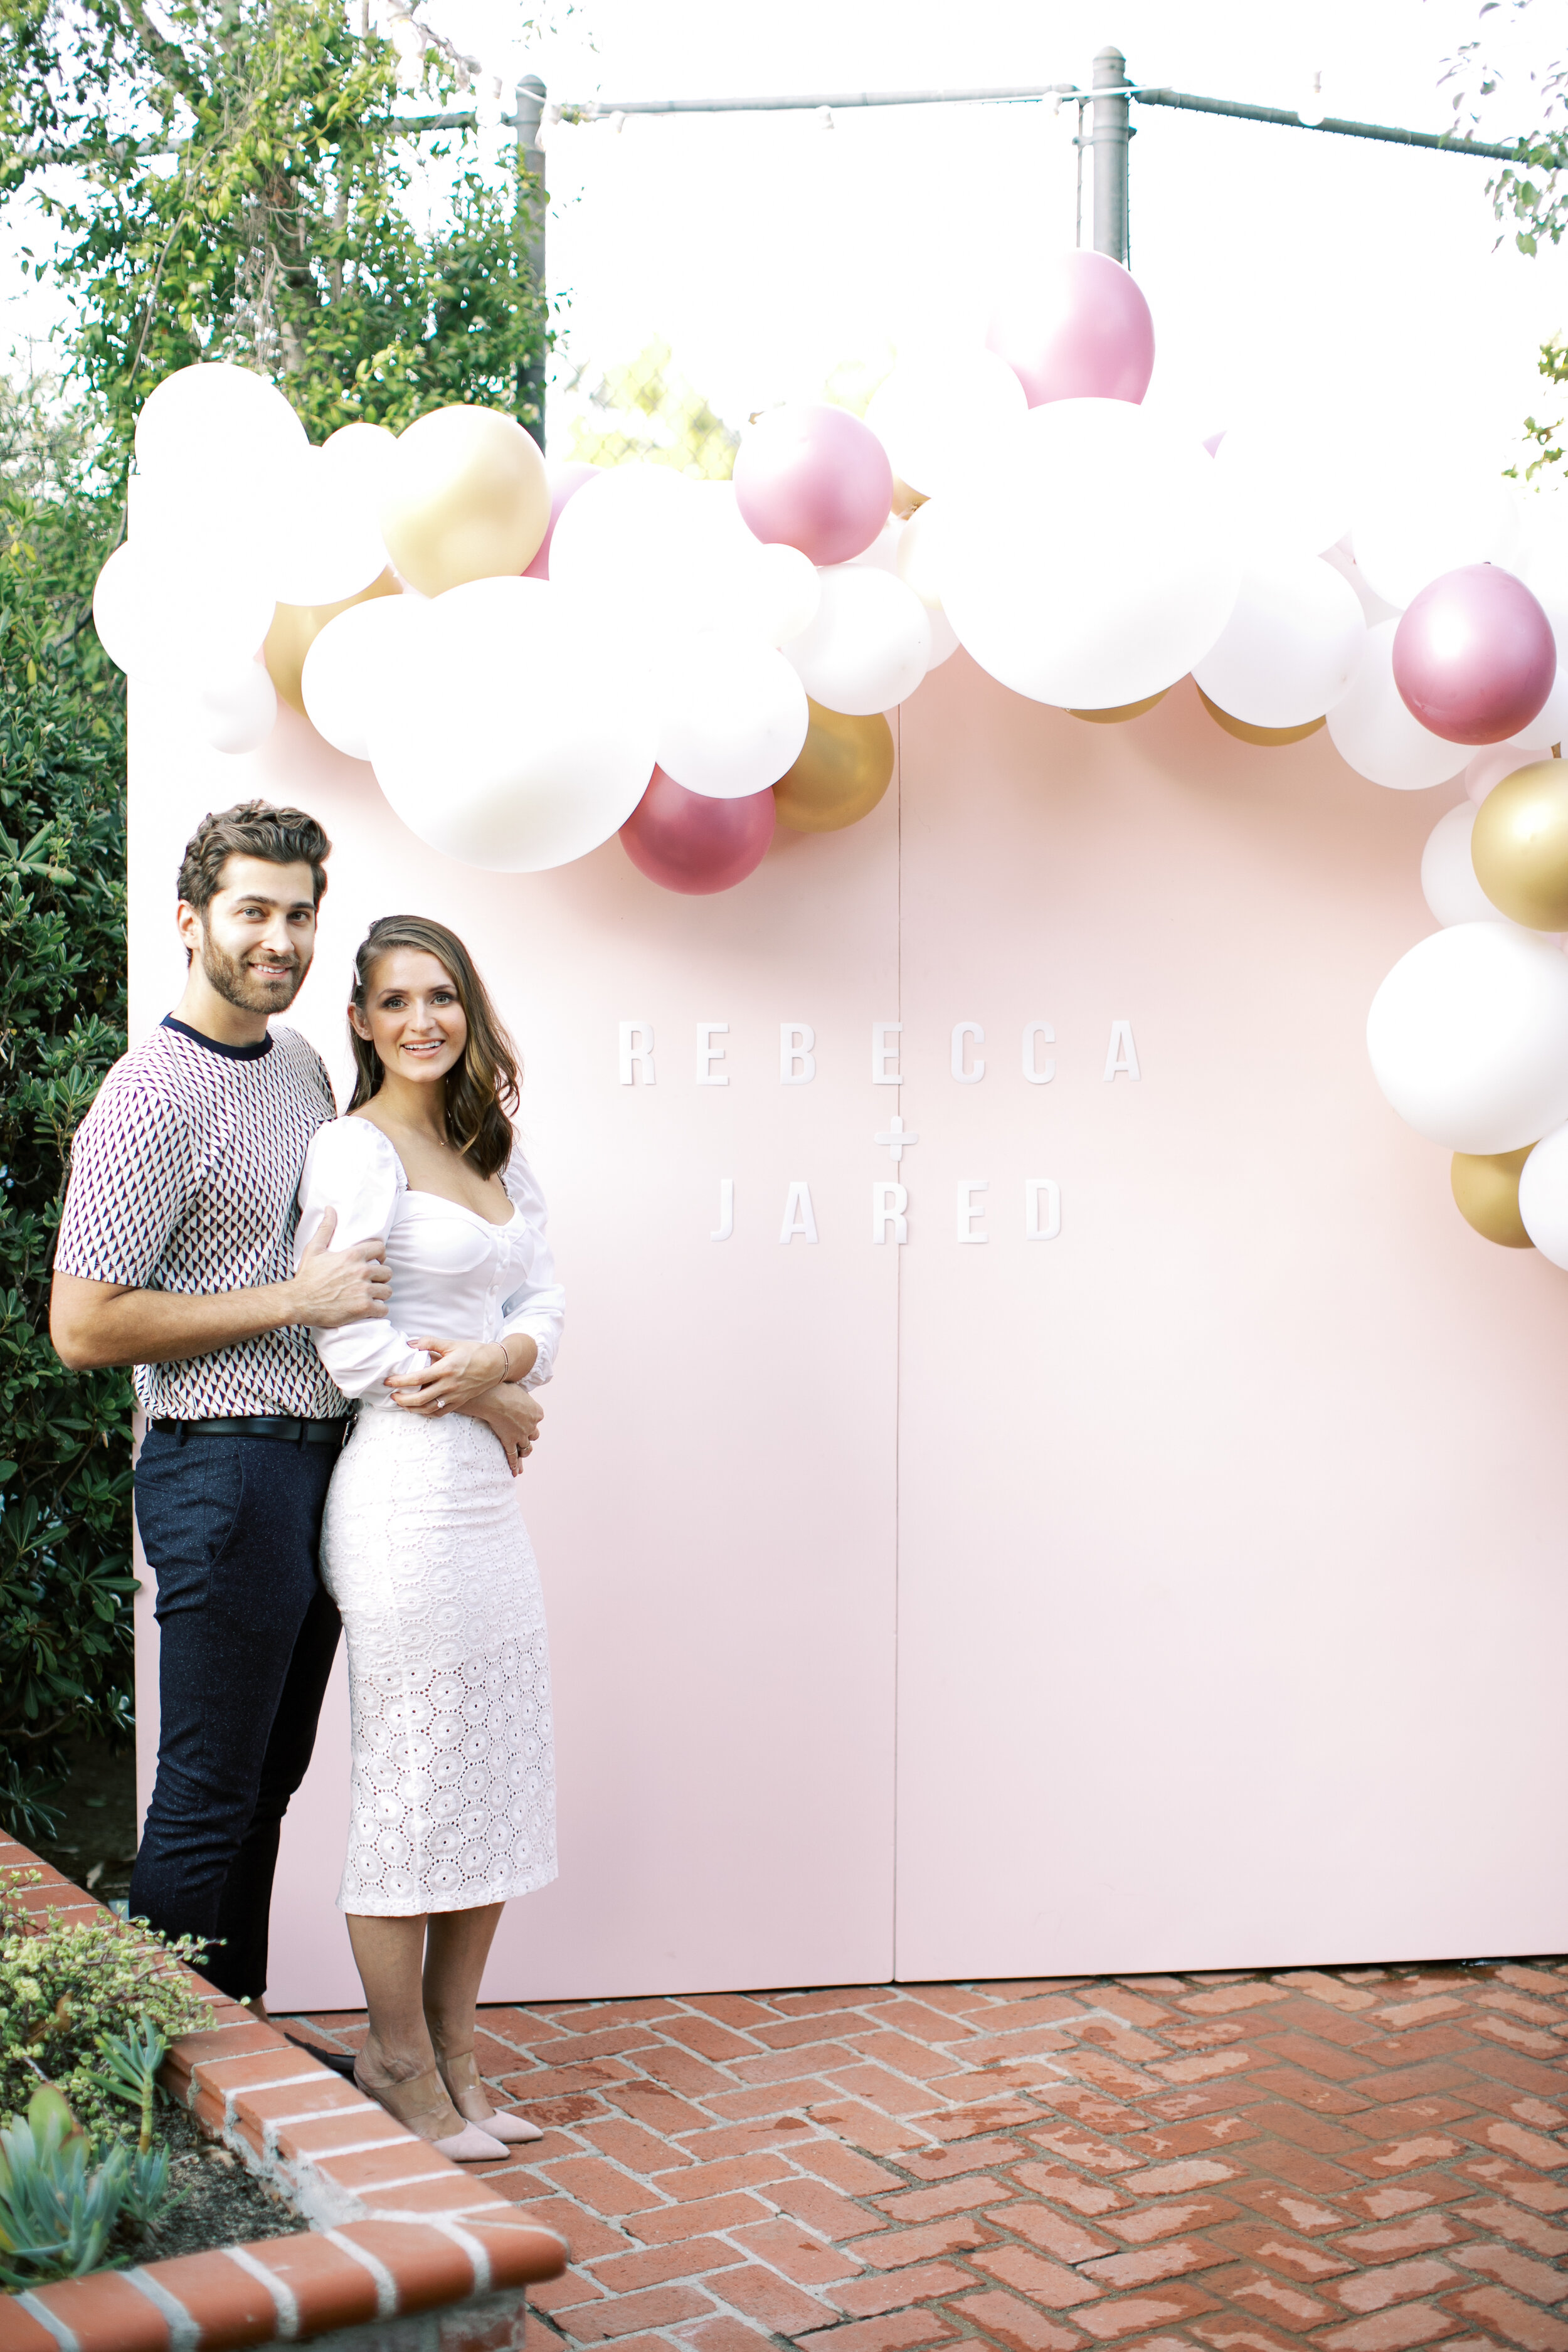 Rebecca-Jared-Engagement-Party-41.jpg